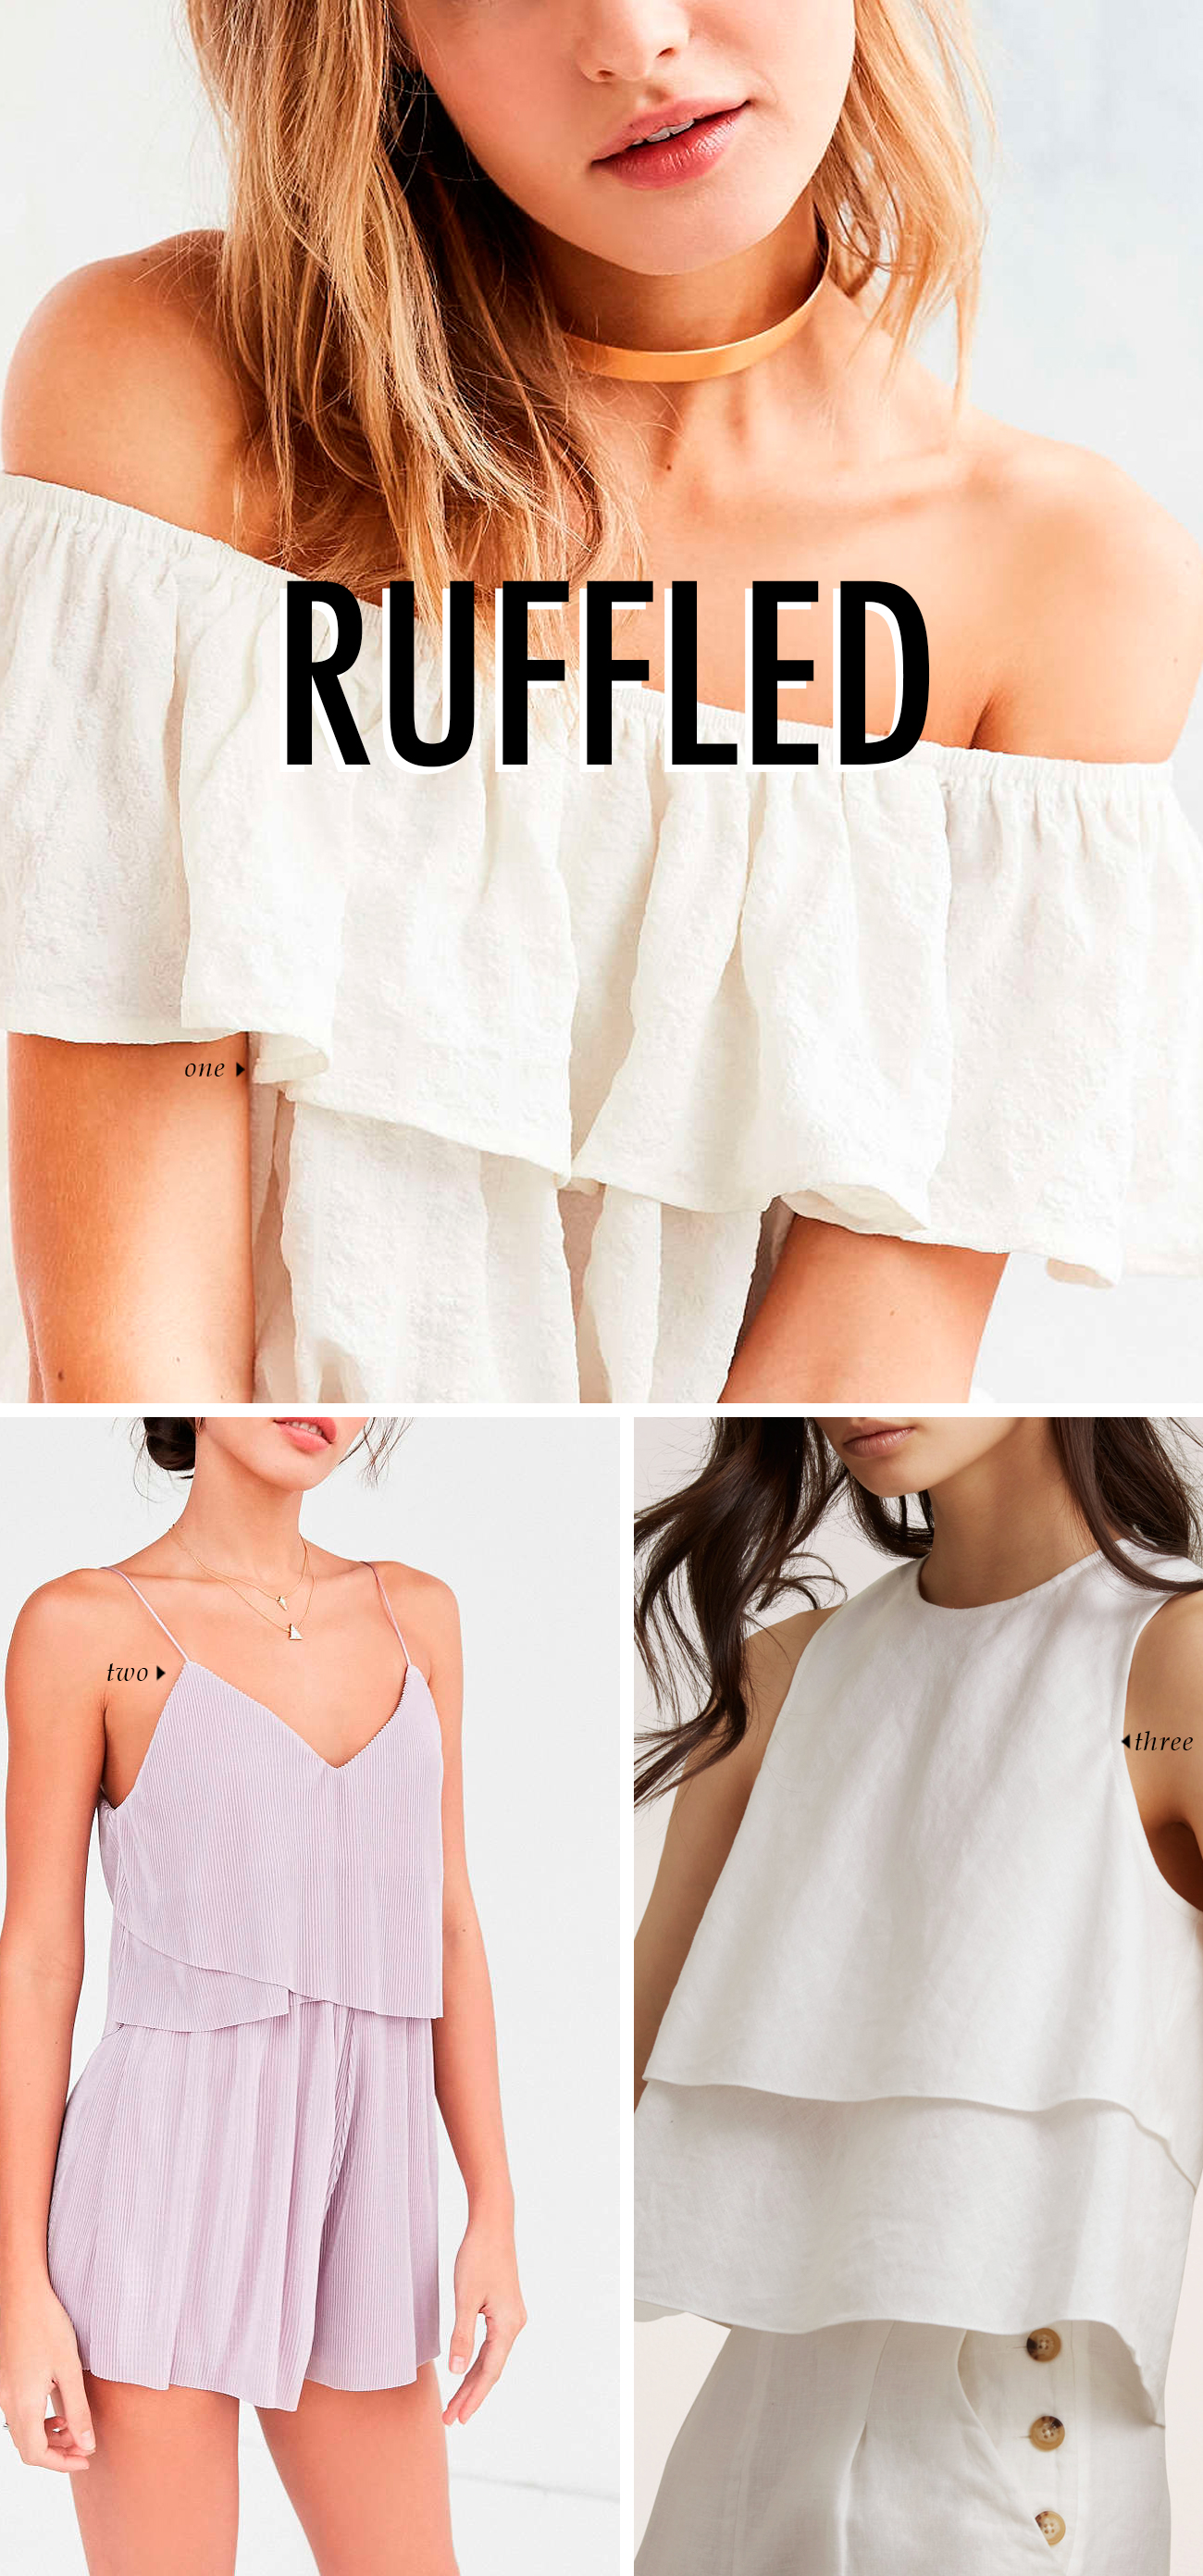 spring summer 2016 clothing trends - RUFFLED #trends